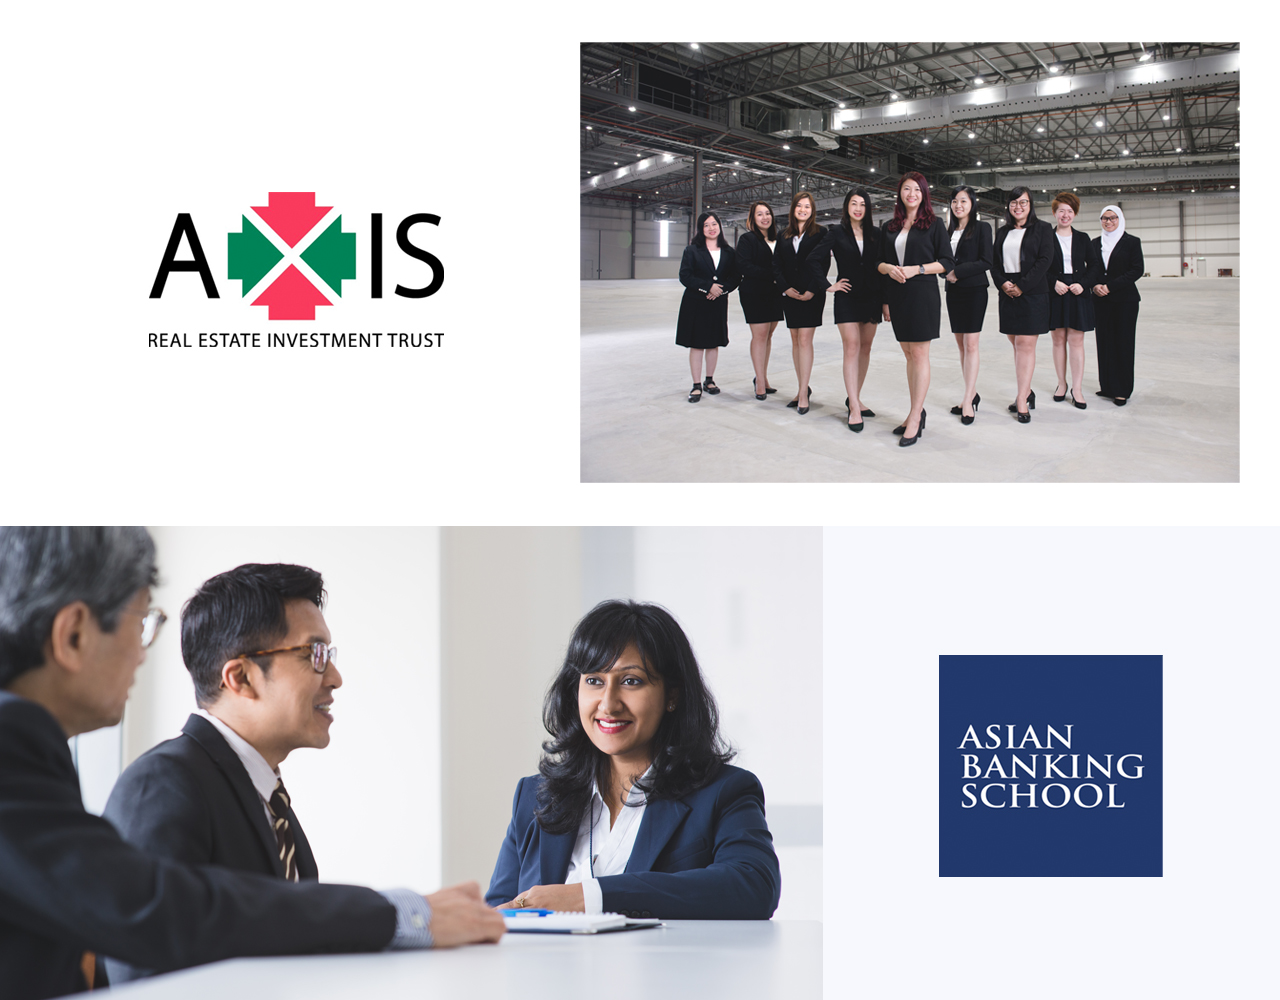 Corporate Portraits for Axis REIT and Asian Banking School